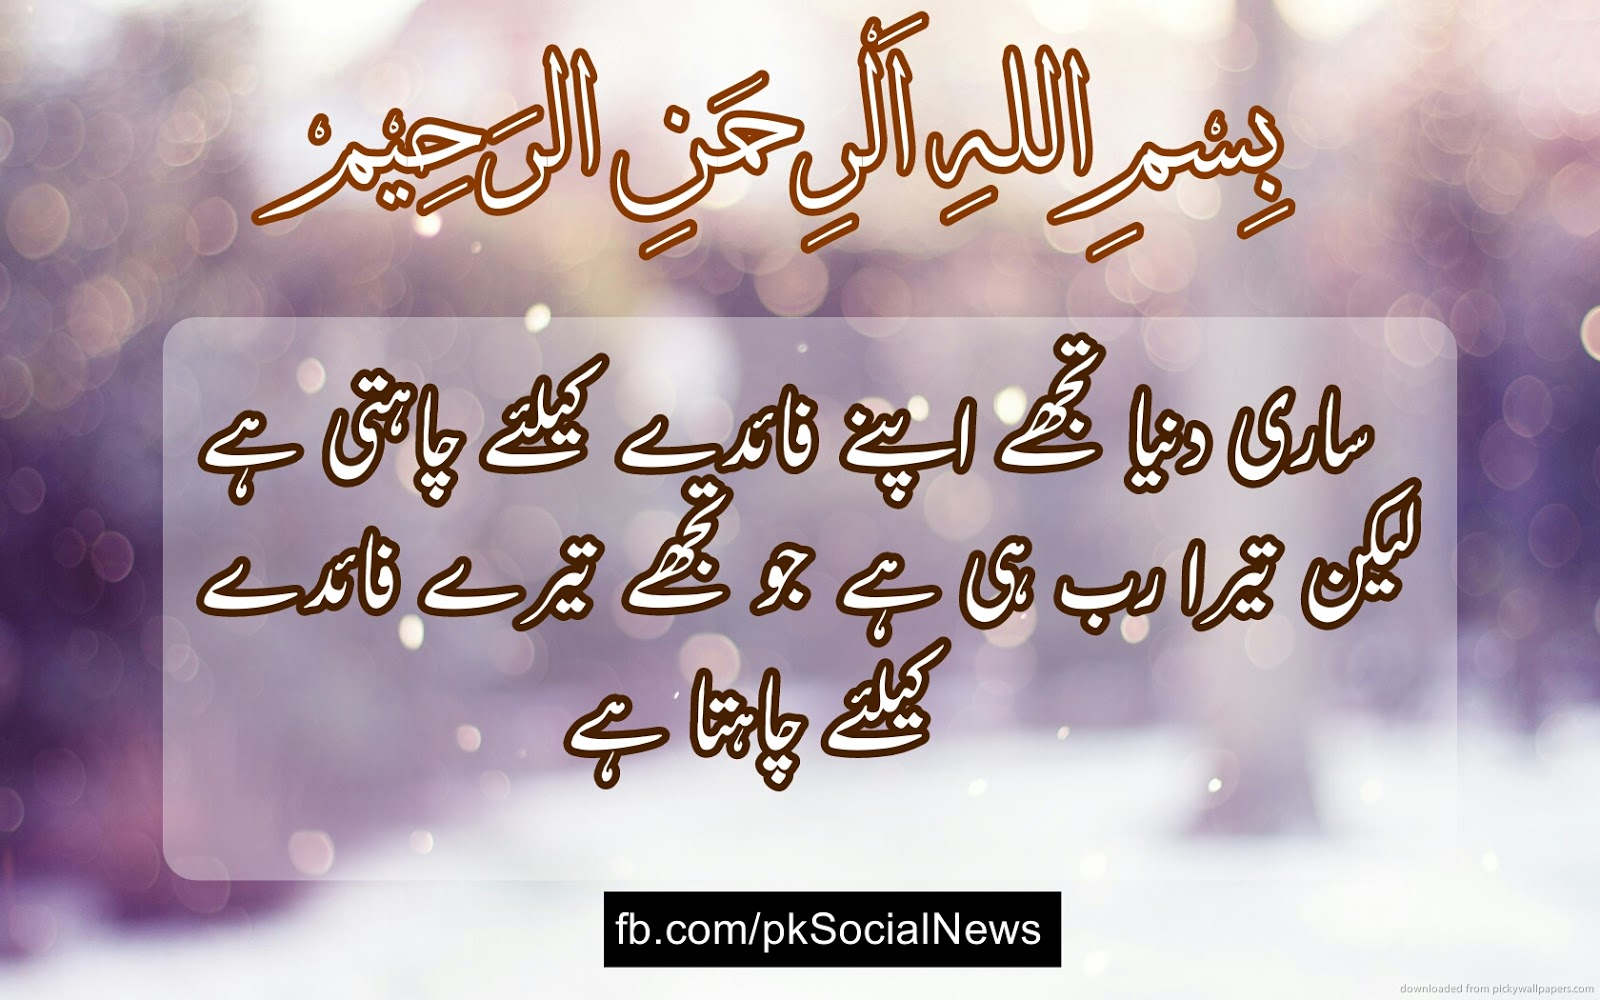 Sad Quotes About Life And Love In Urdu : life urdu sayings urdu love quotes urdu funny quotes urdu sad quotes ...